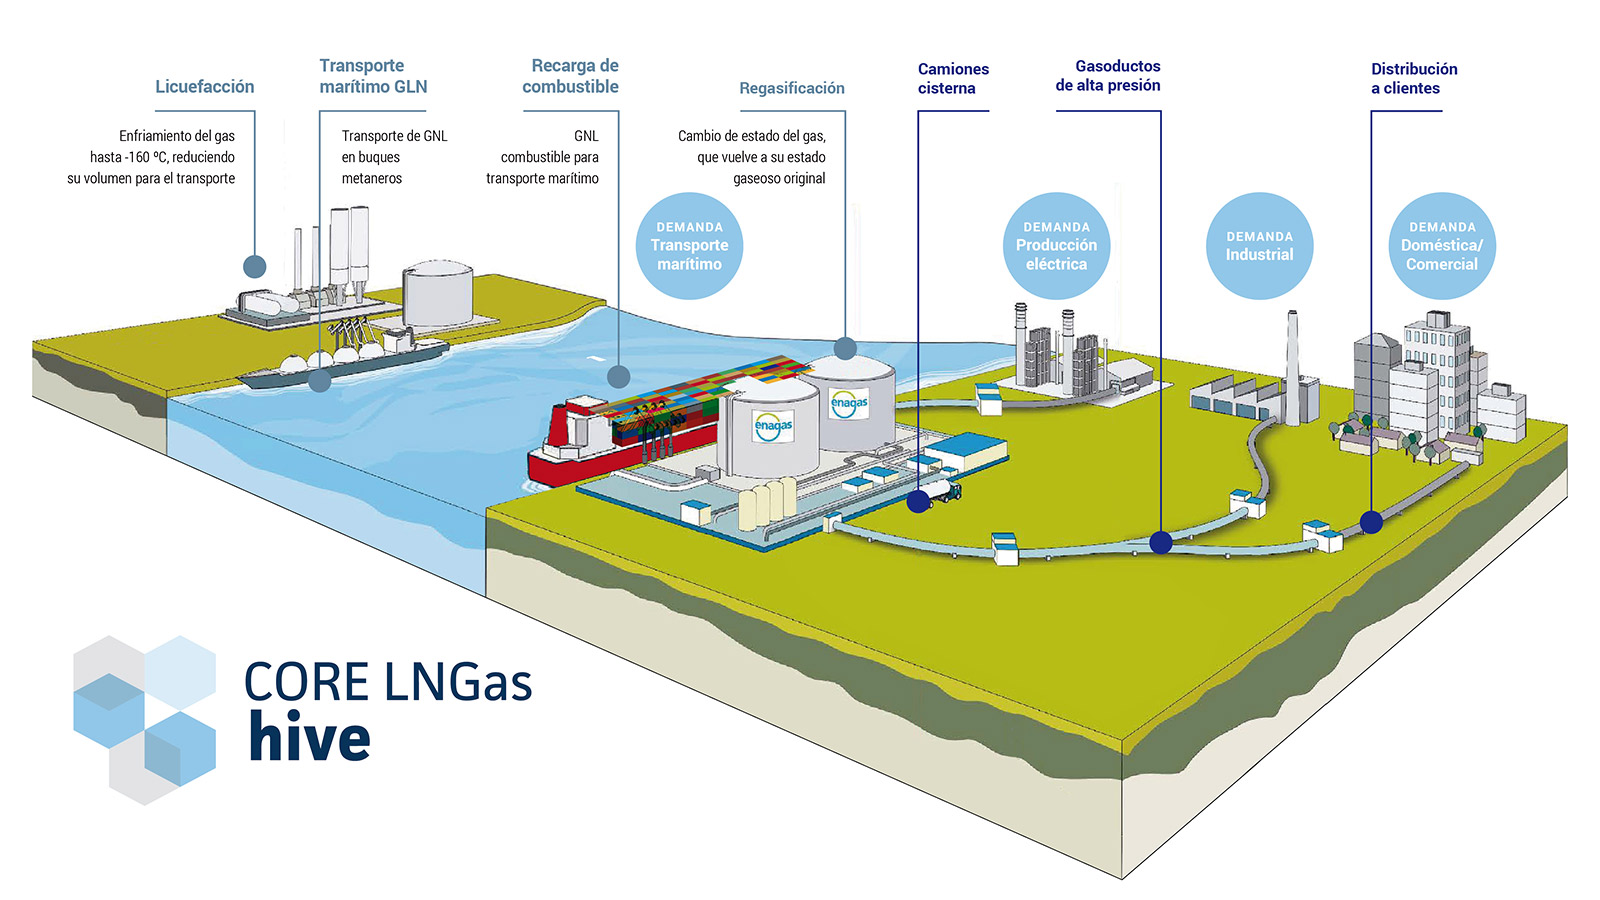 Gnl core lngas hive clean power for transport for Gas natural servicios